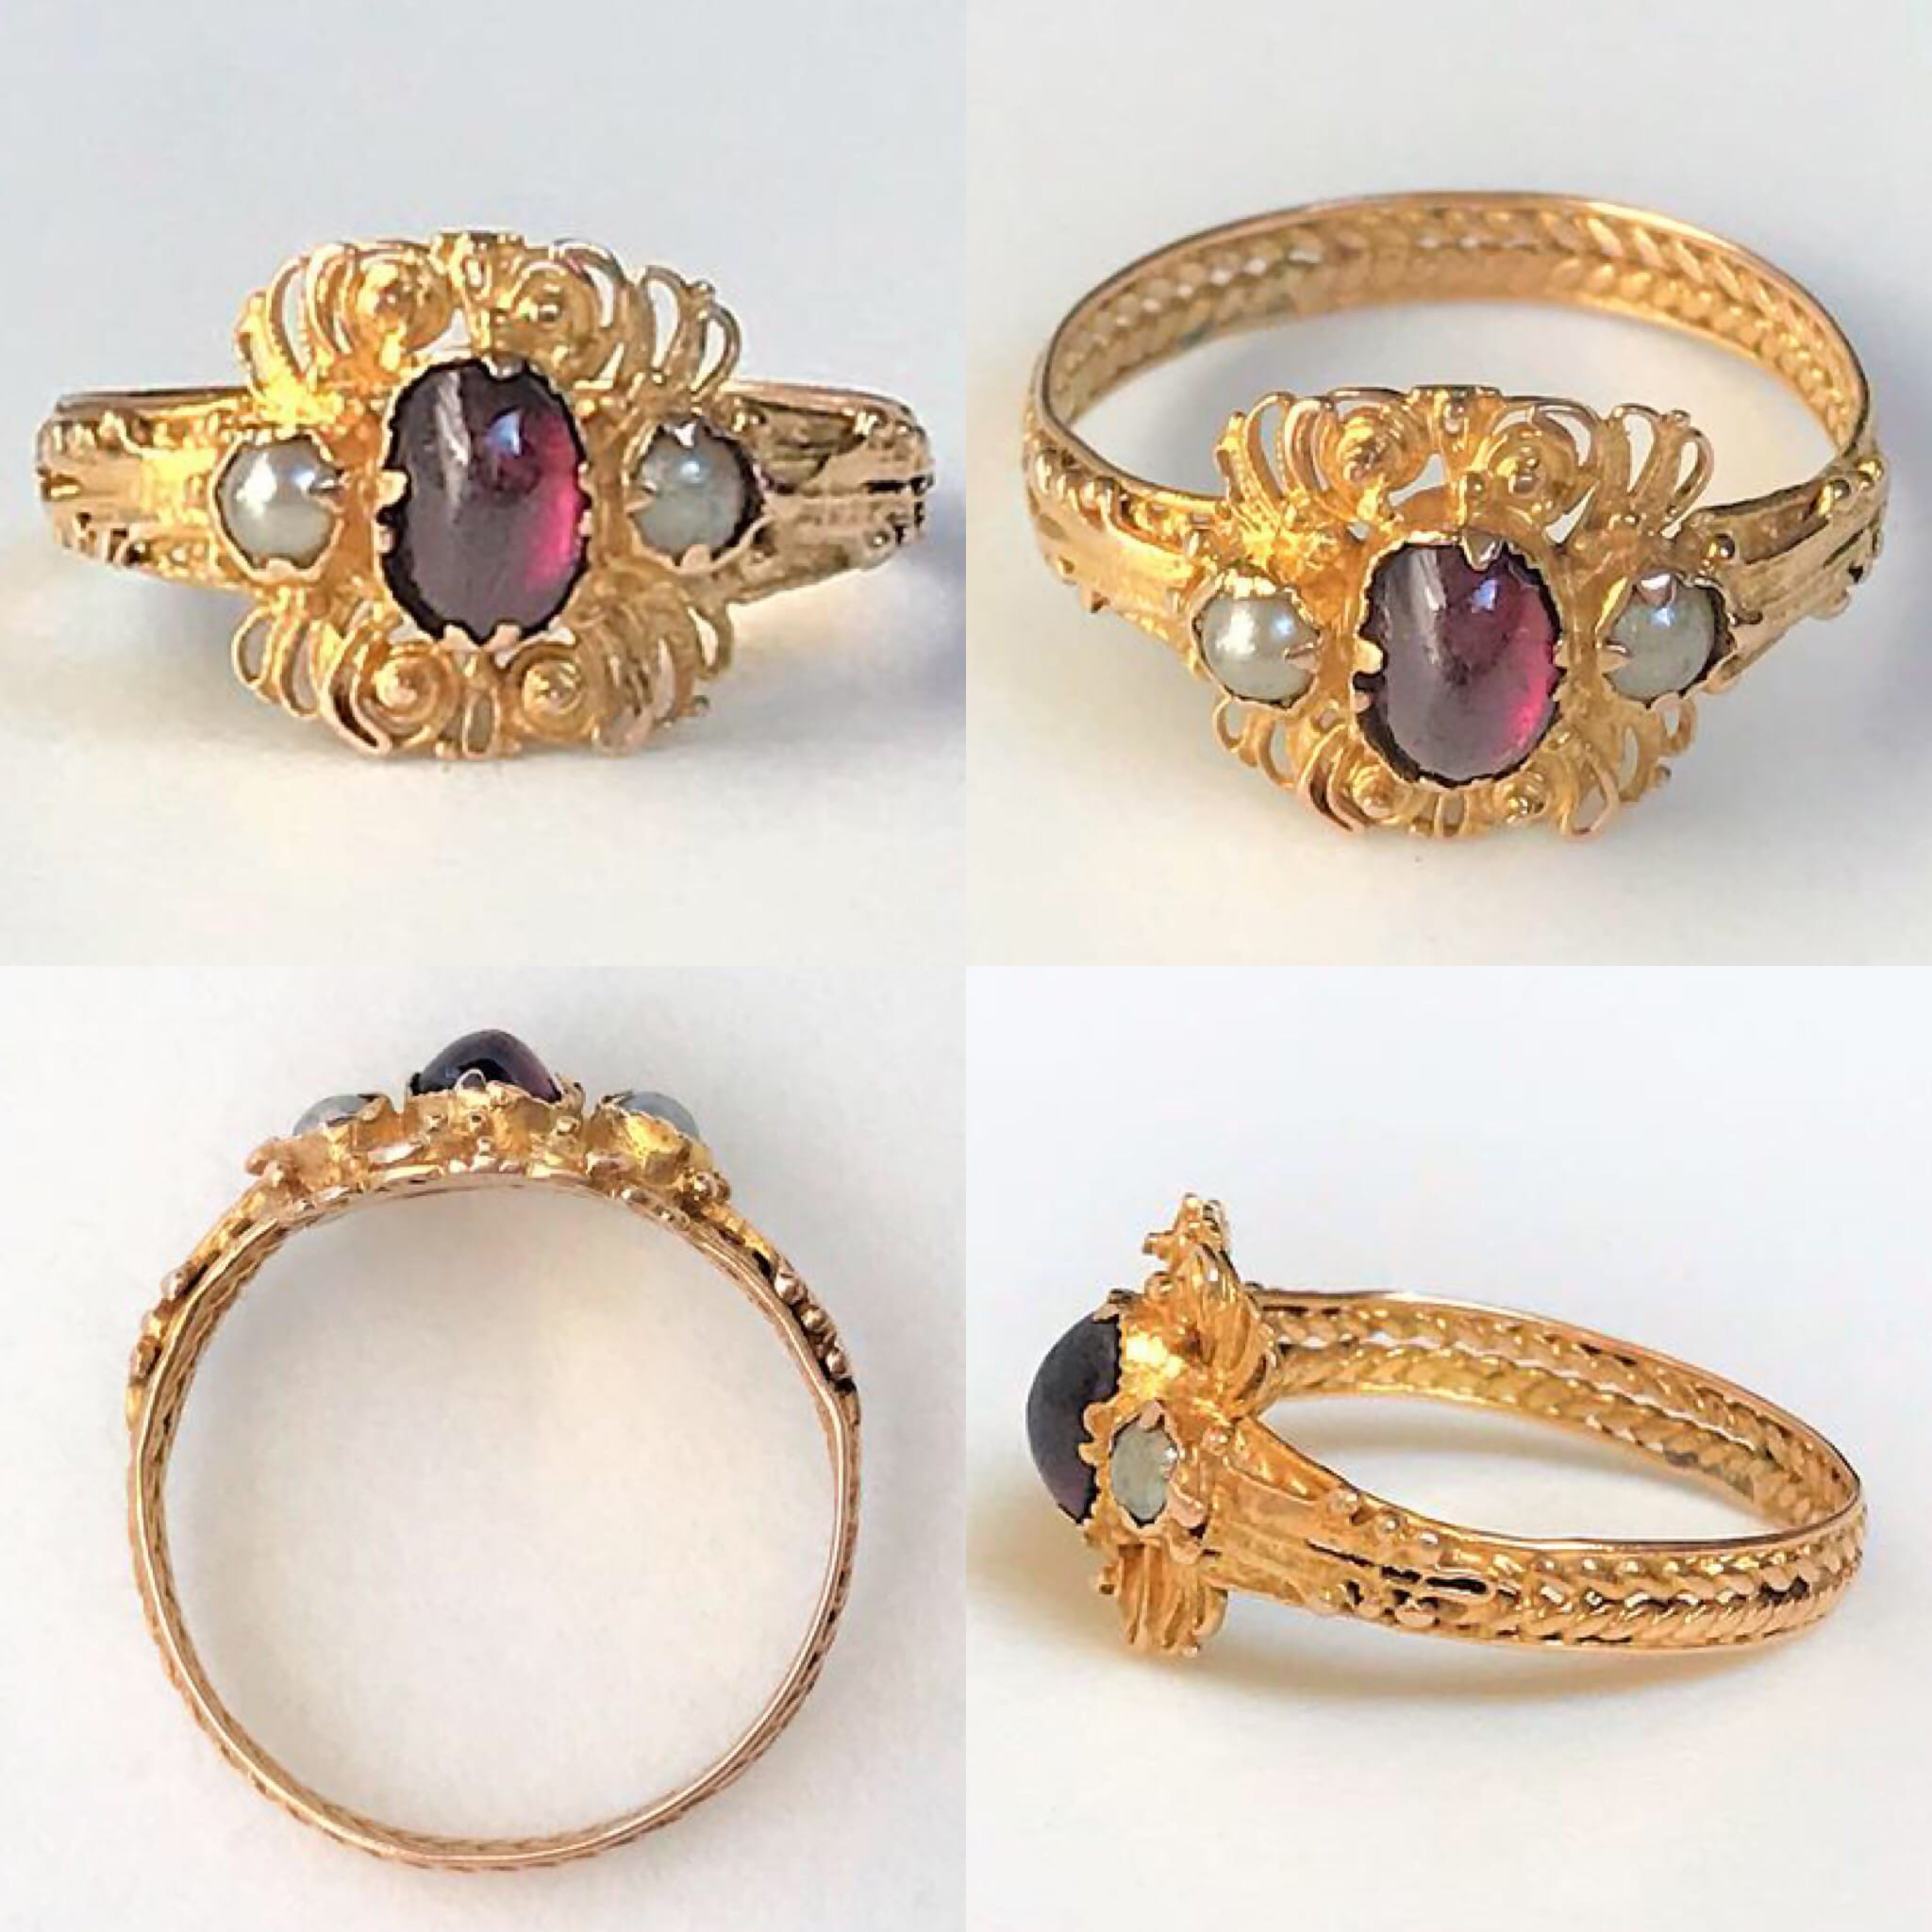 Antique 18ct Gold Ruby and Pearl Ring